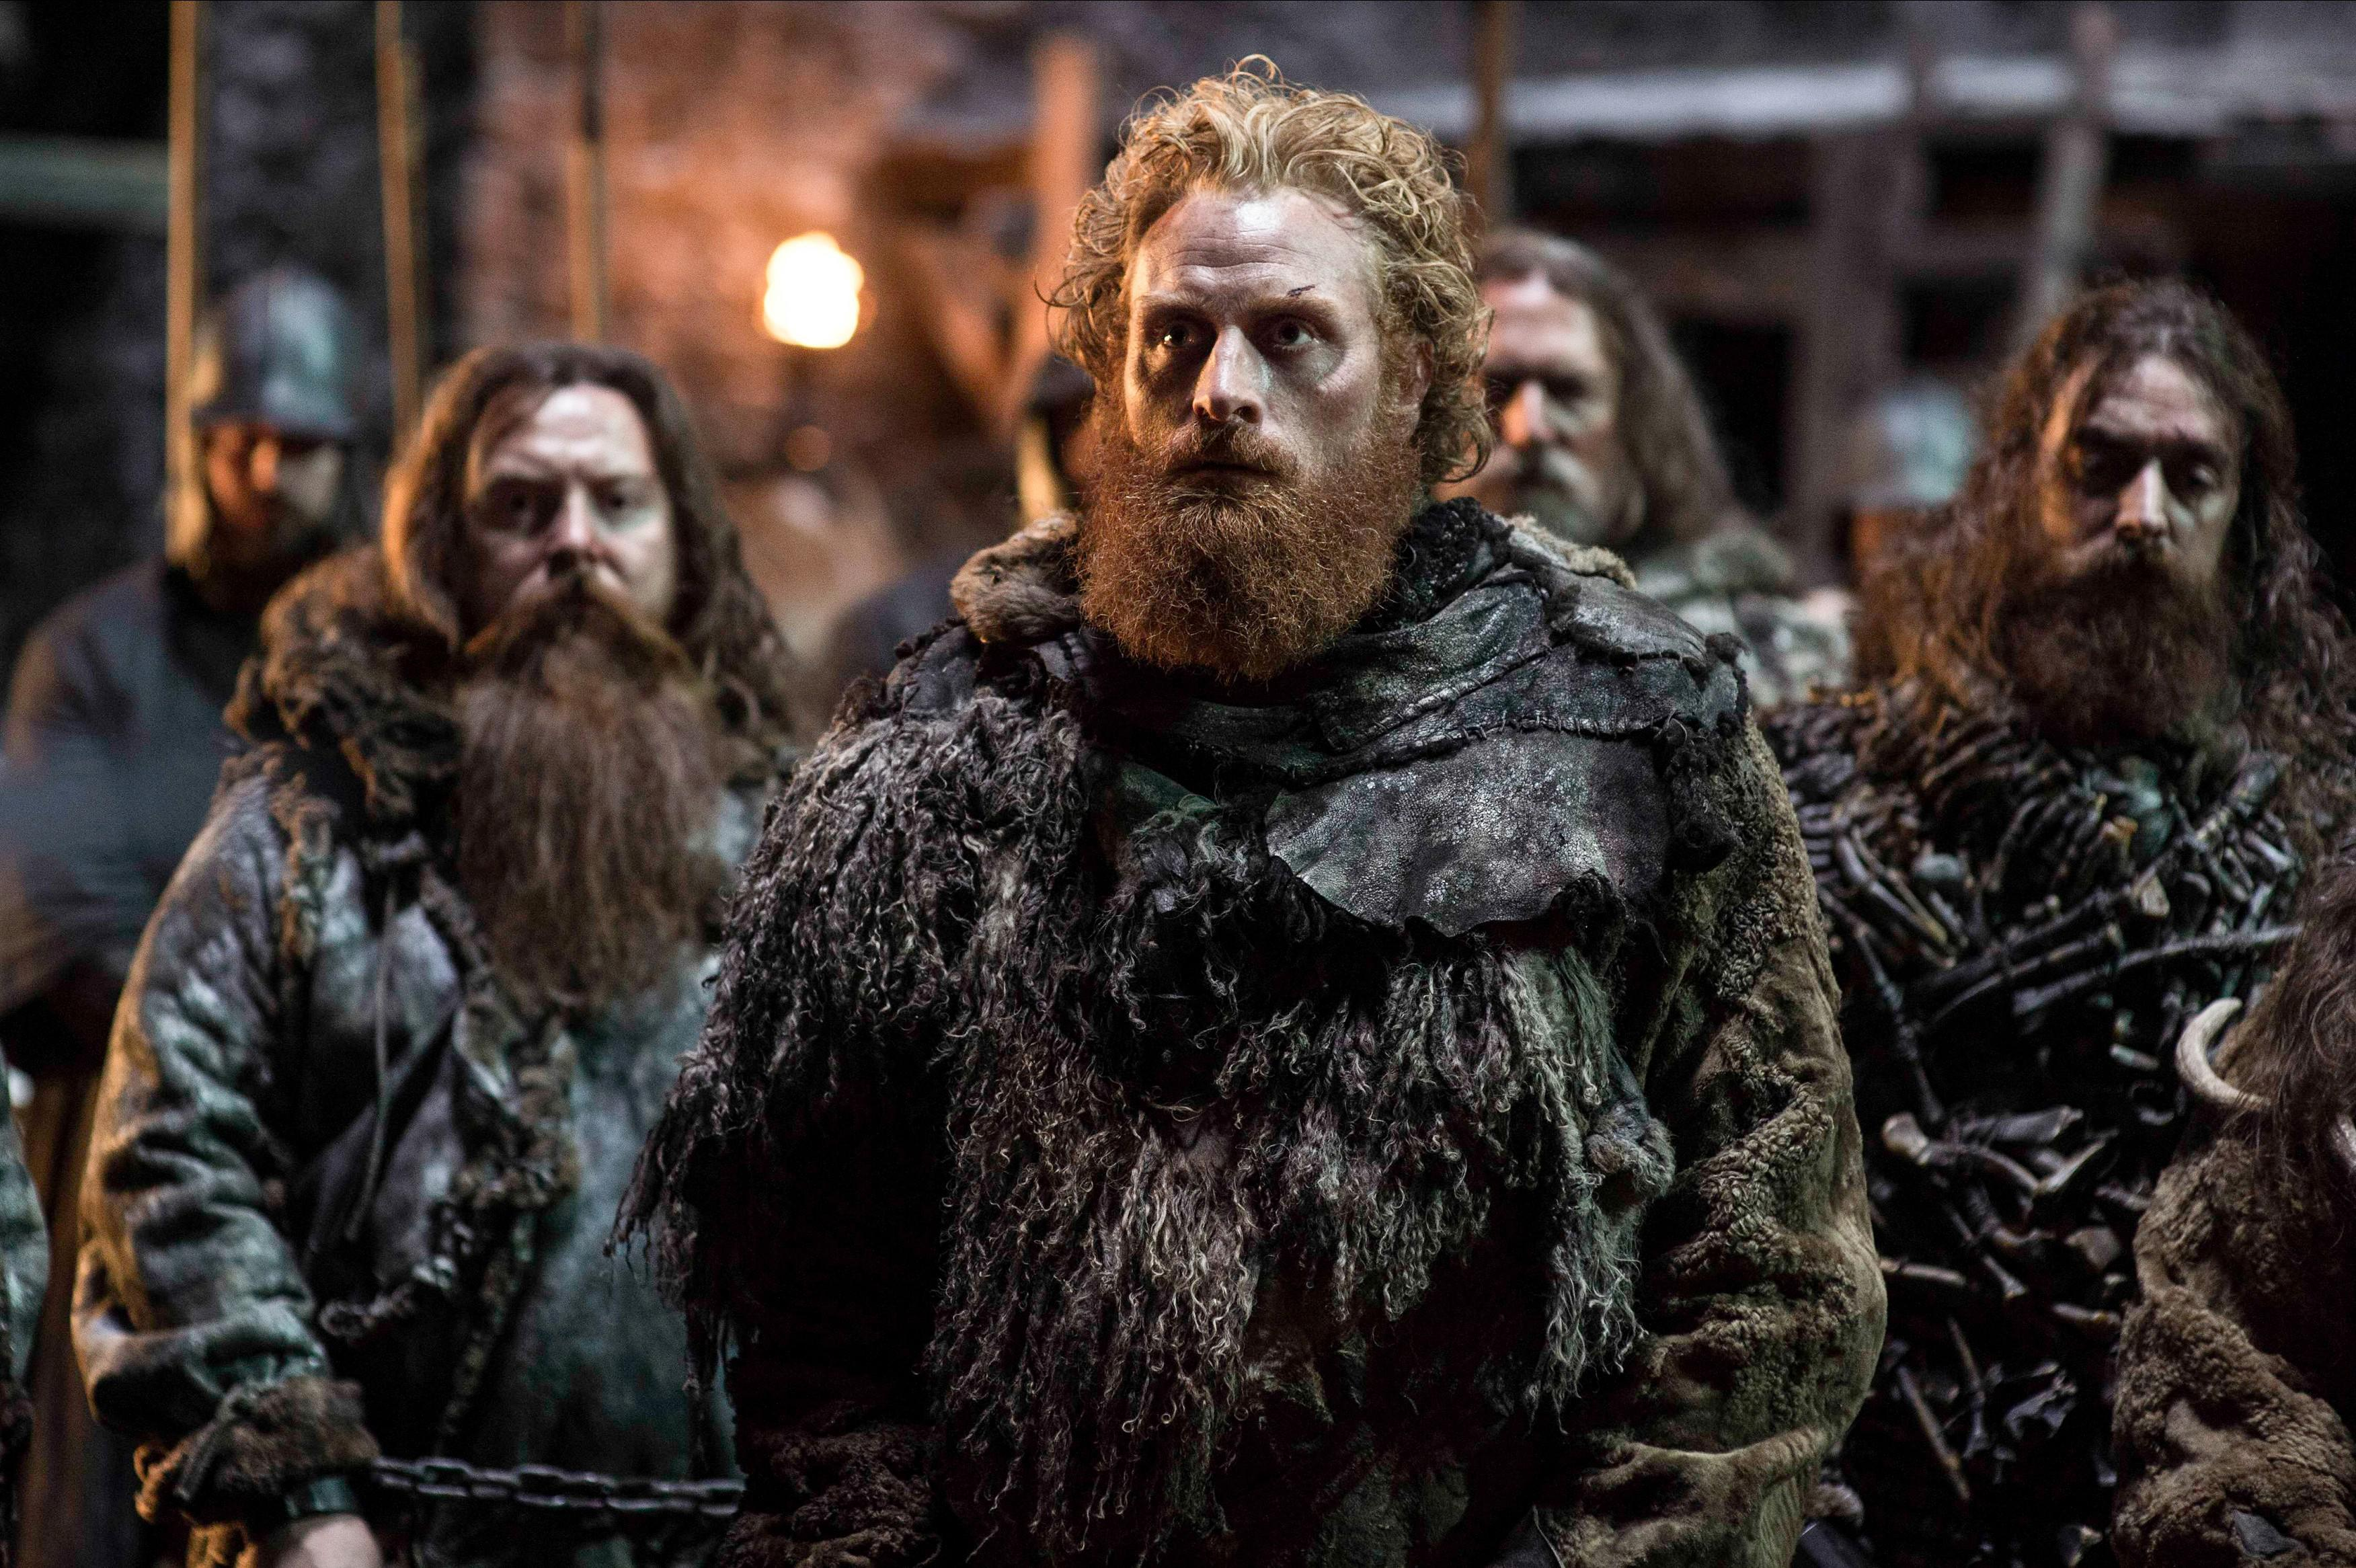 KRISTOFER HIVJU GAME OF THRONES : SEASON 5 (2015)